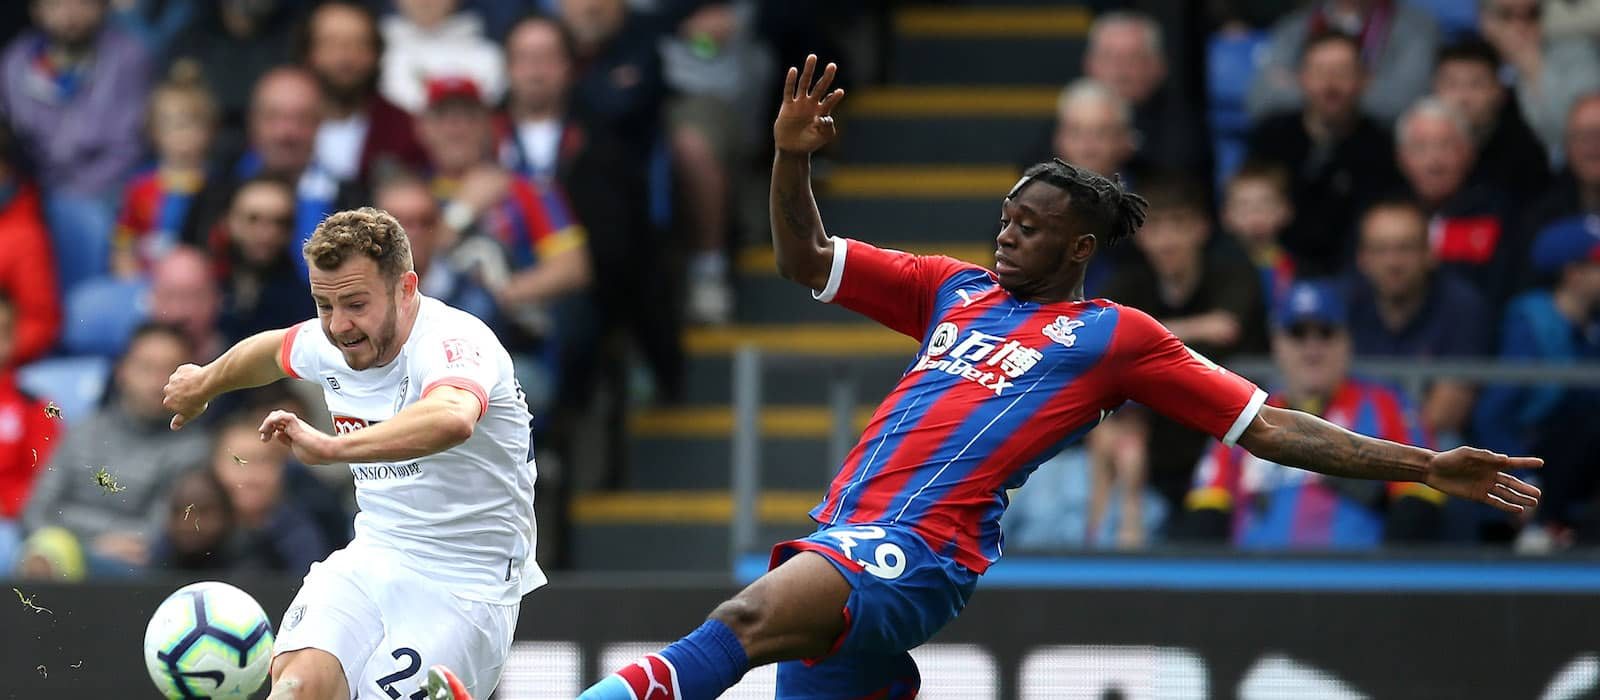 Manchester United agree £50m transfer for Aaron Wan-Bissaka